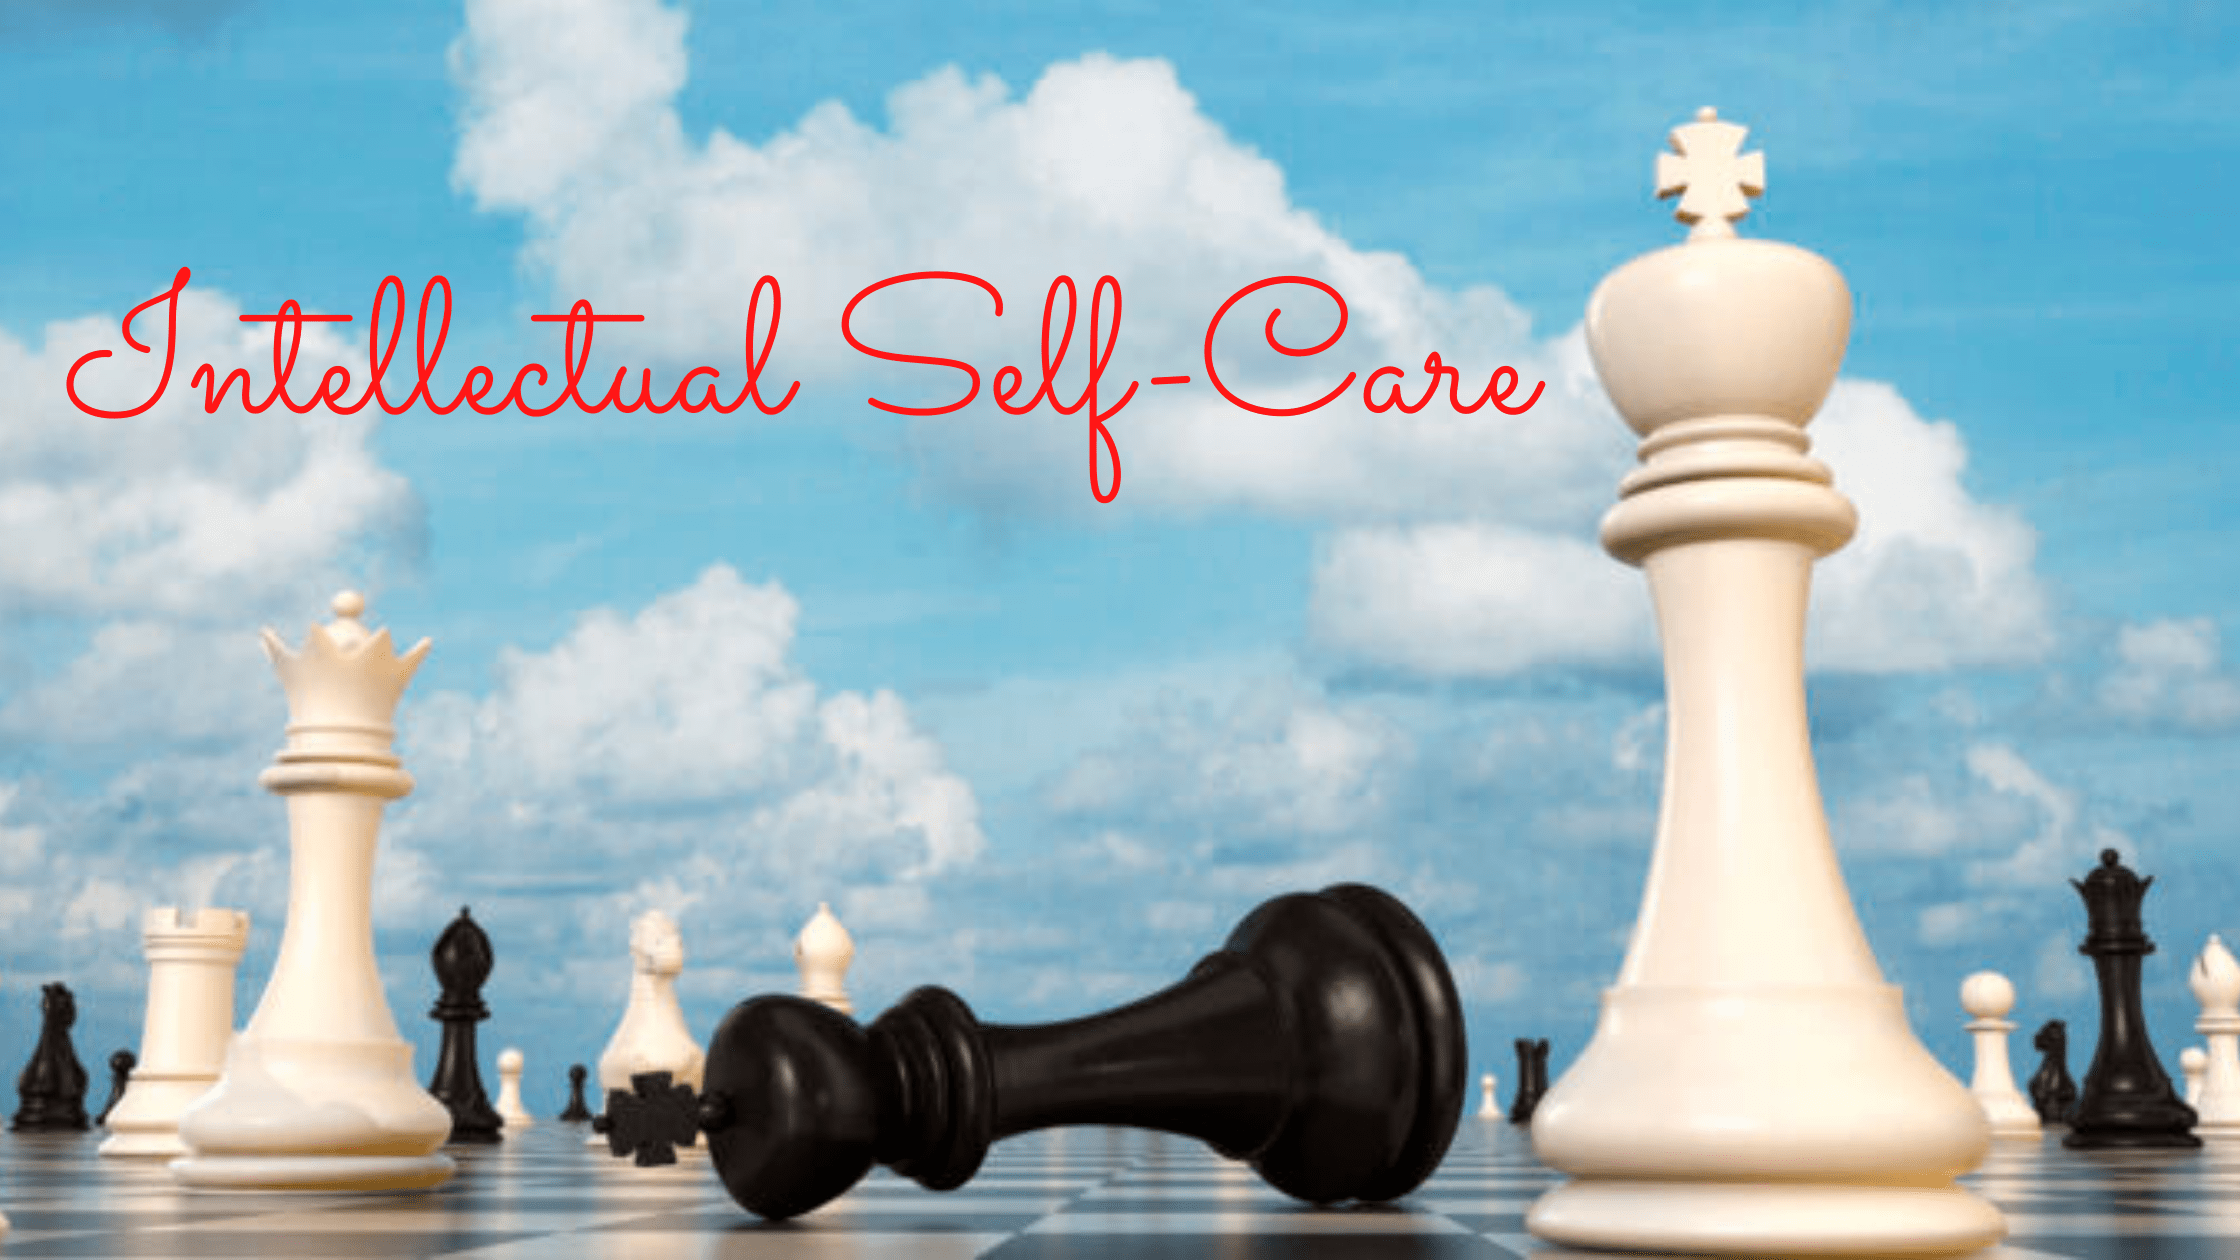 https://hersecondinnings.com/wp-content/uploads/2020/11/Pathways-to-Self-Care.-inner-imagepng-min.png